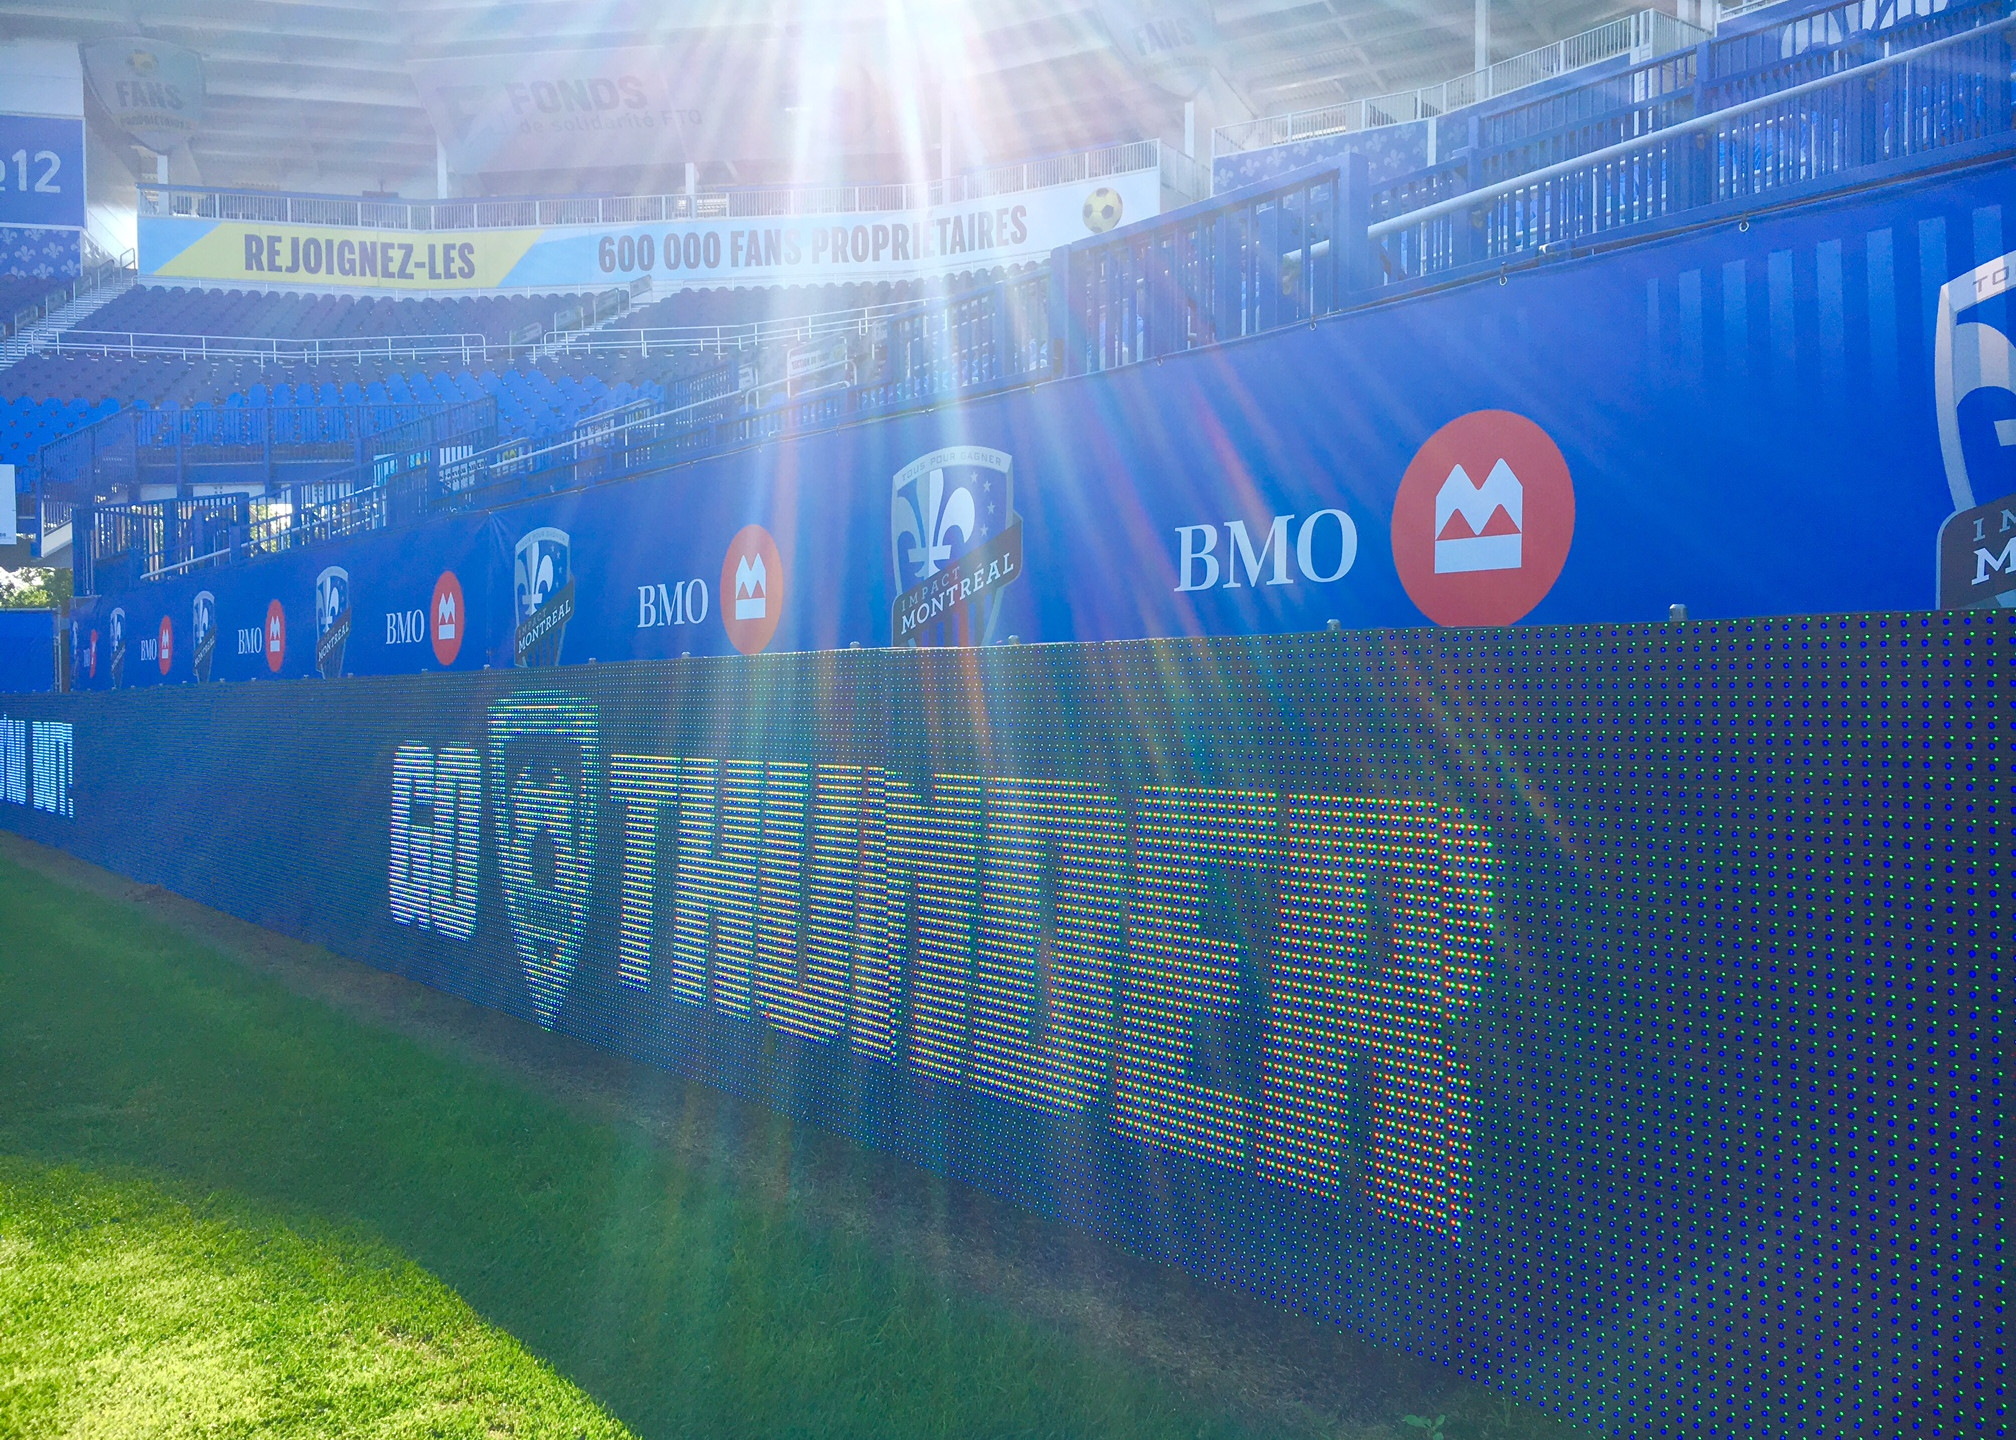 Checking out the animation on screens at the Saputo Stadium shooting 21 Thunder. Montreal, July 2016